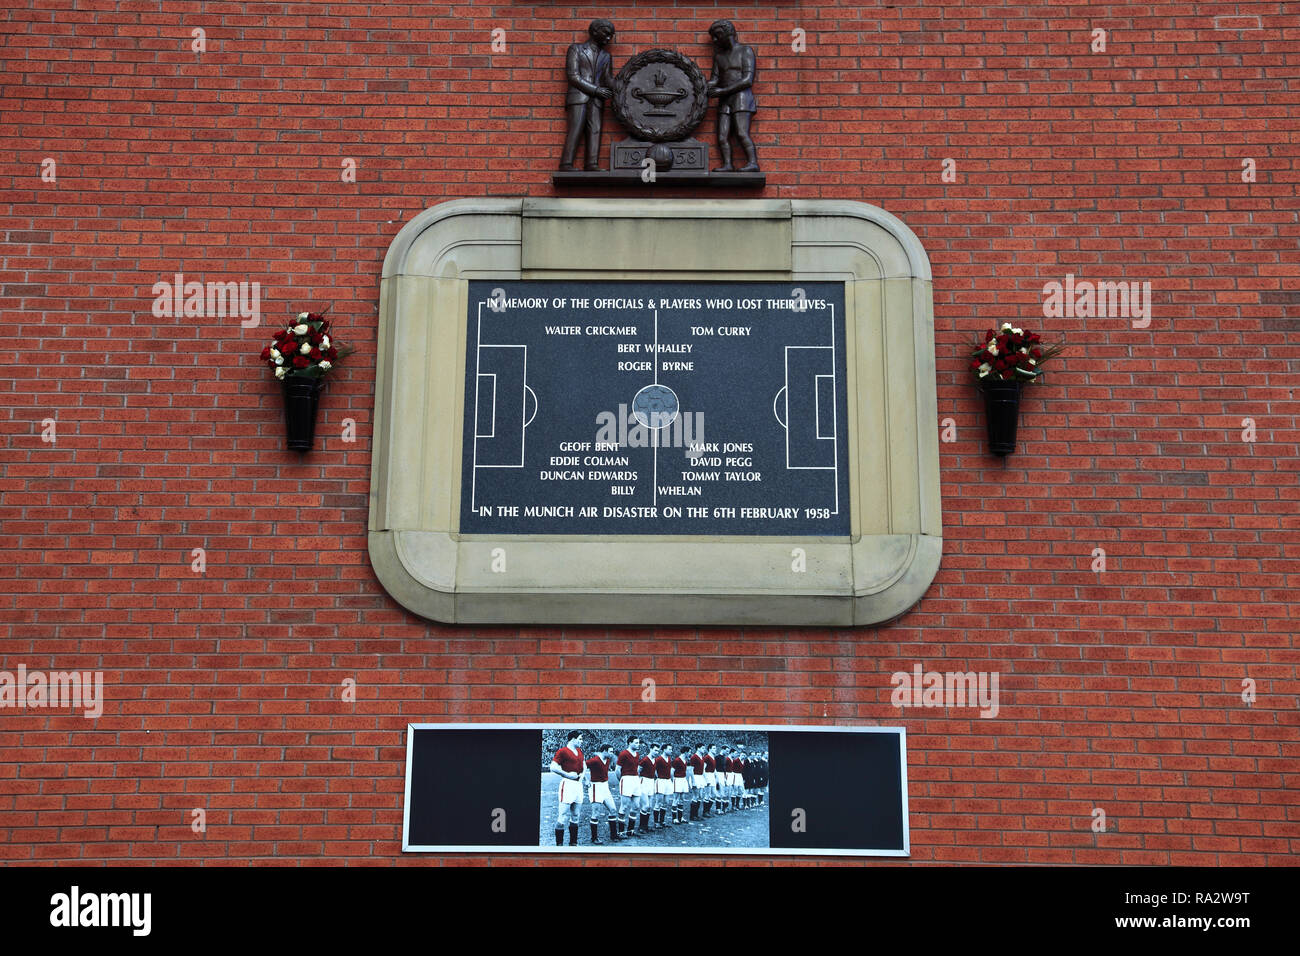 Munich air disaster memorial, Manchester United's Old Trafford ground, Manchester, England, UK - Stock Image